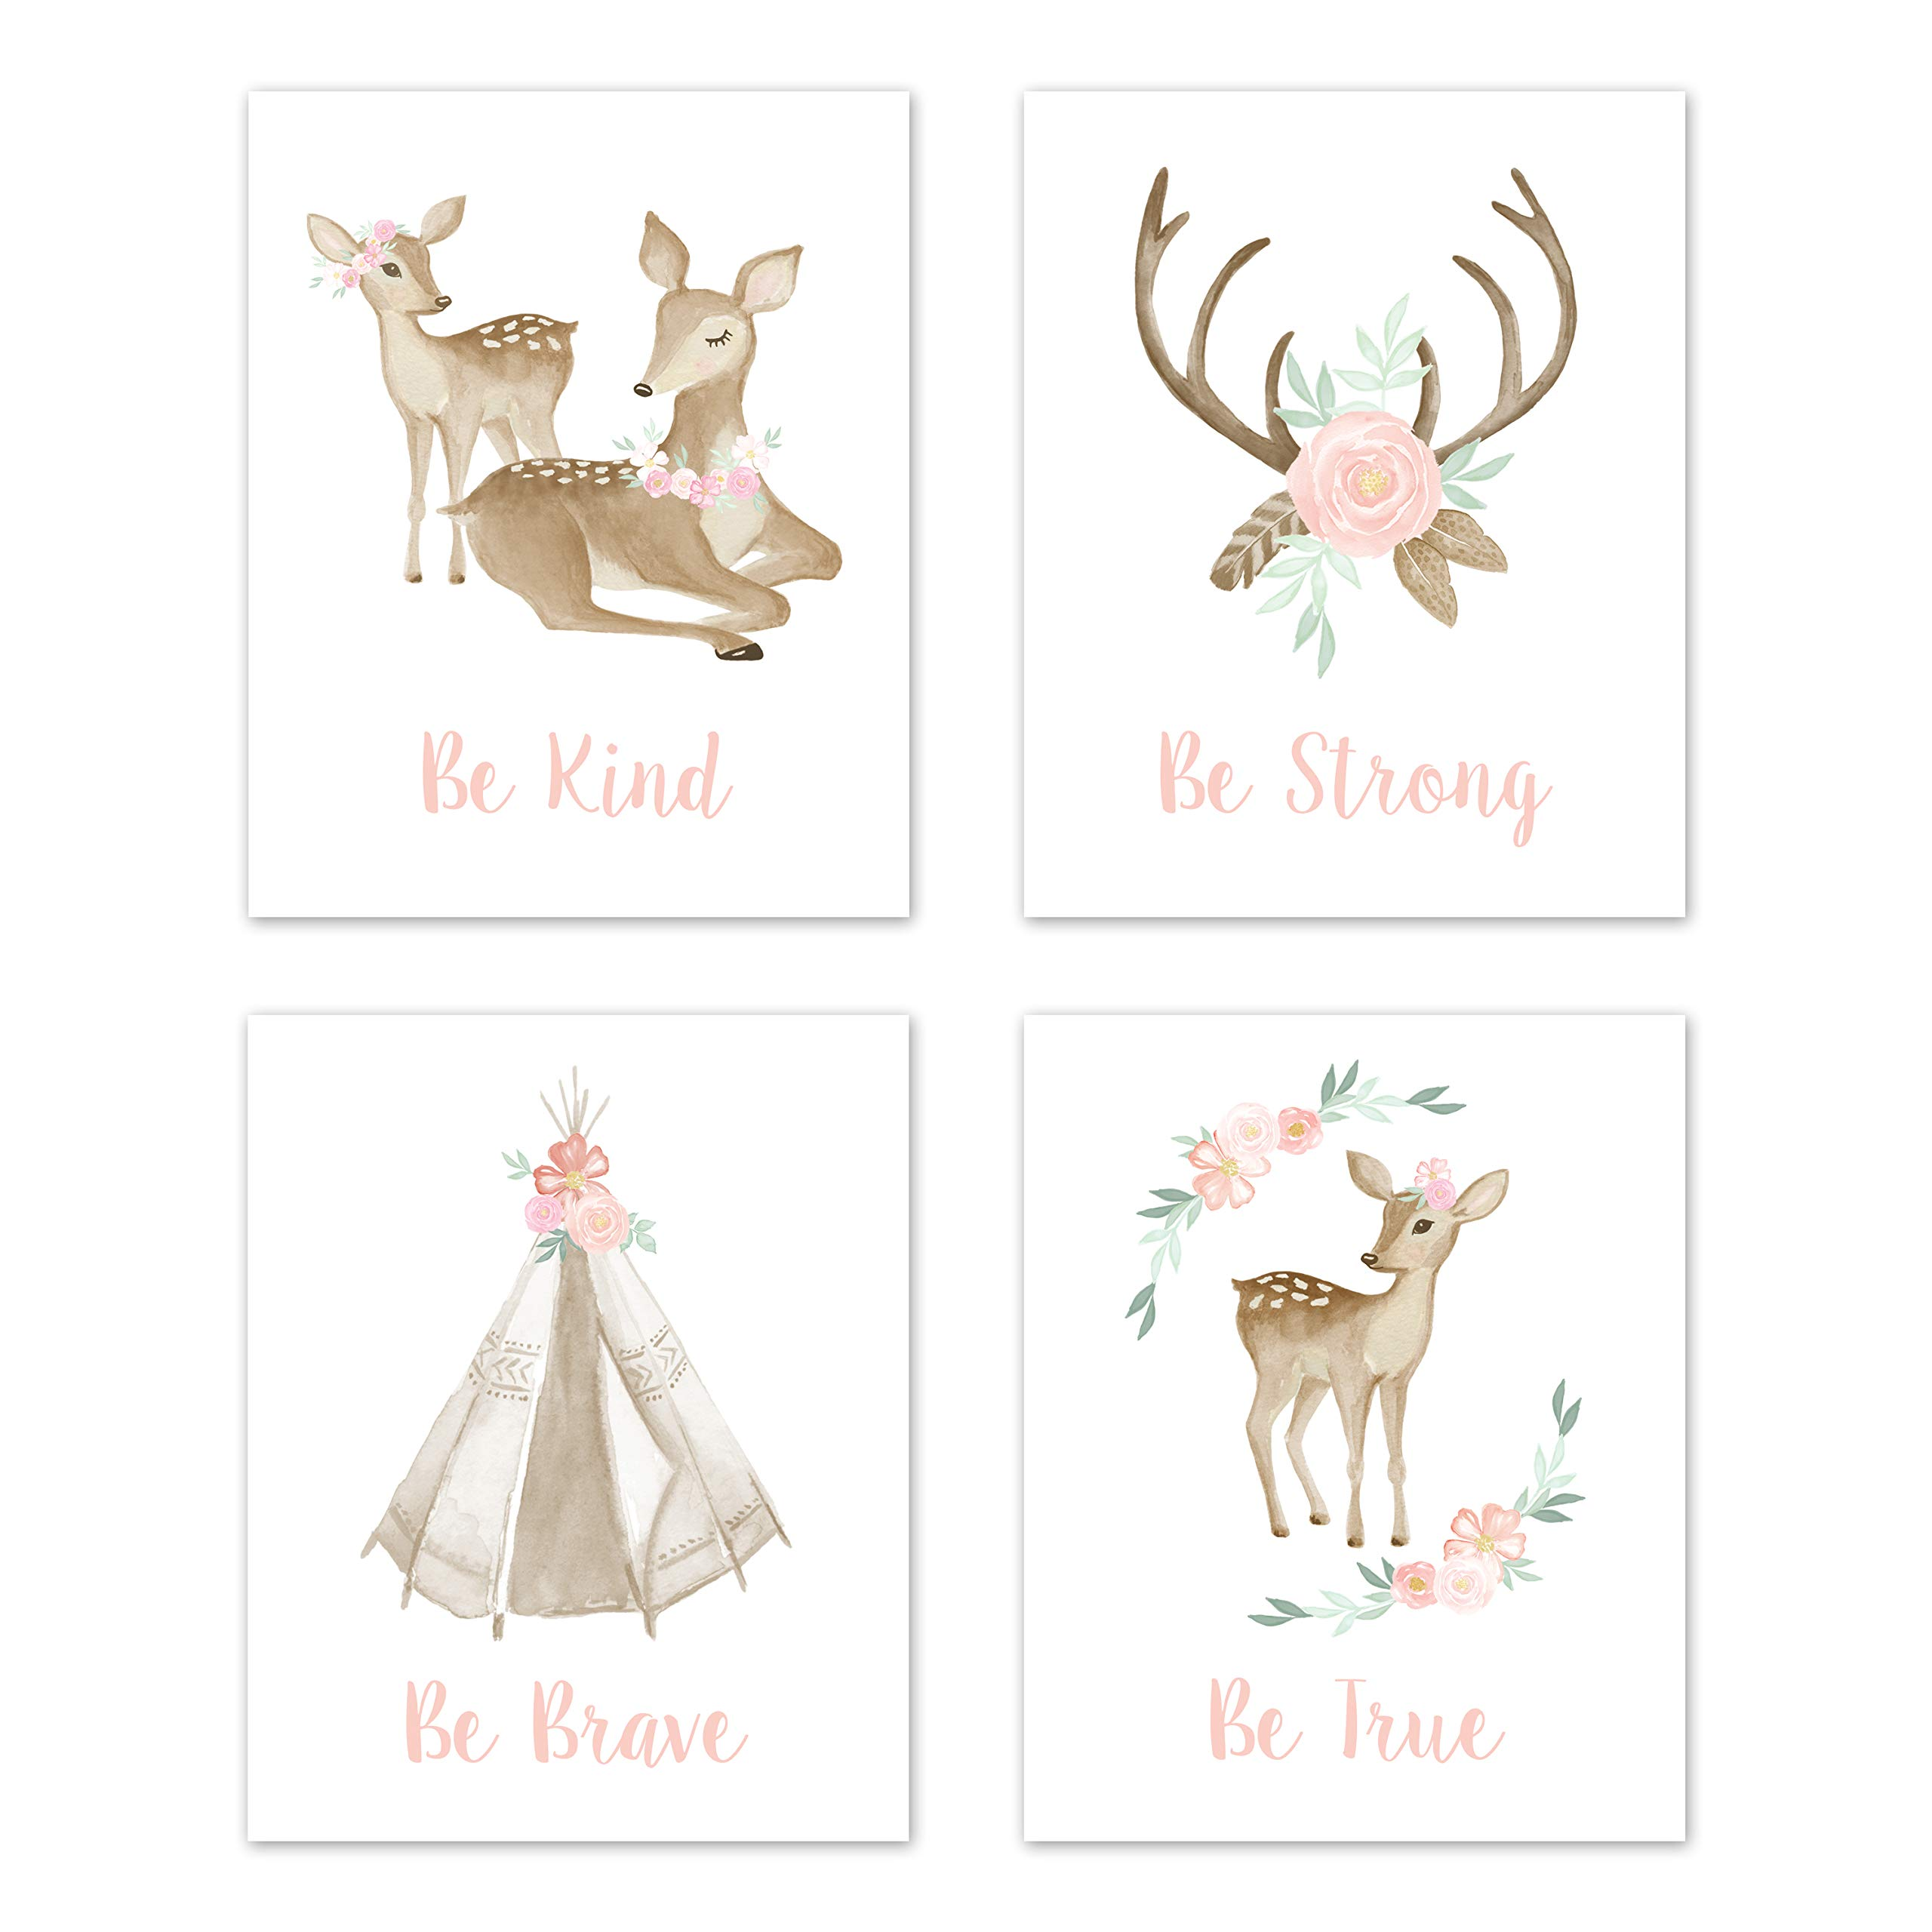 Sweet Jojo Designs Blush Pink and Mint Wall Art Prints Room Decor for Baby, Nursery, and Kids for Boho Woodland Deer Floral Collection - Set of 4 - Be Kind, Be Strong, Be Brave, Be True by Sweet Jojo Designs